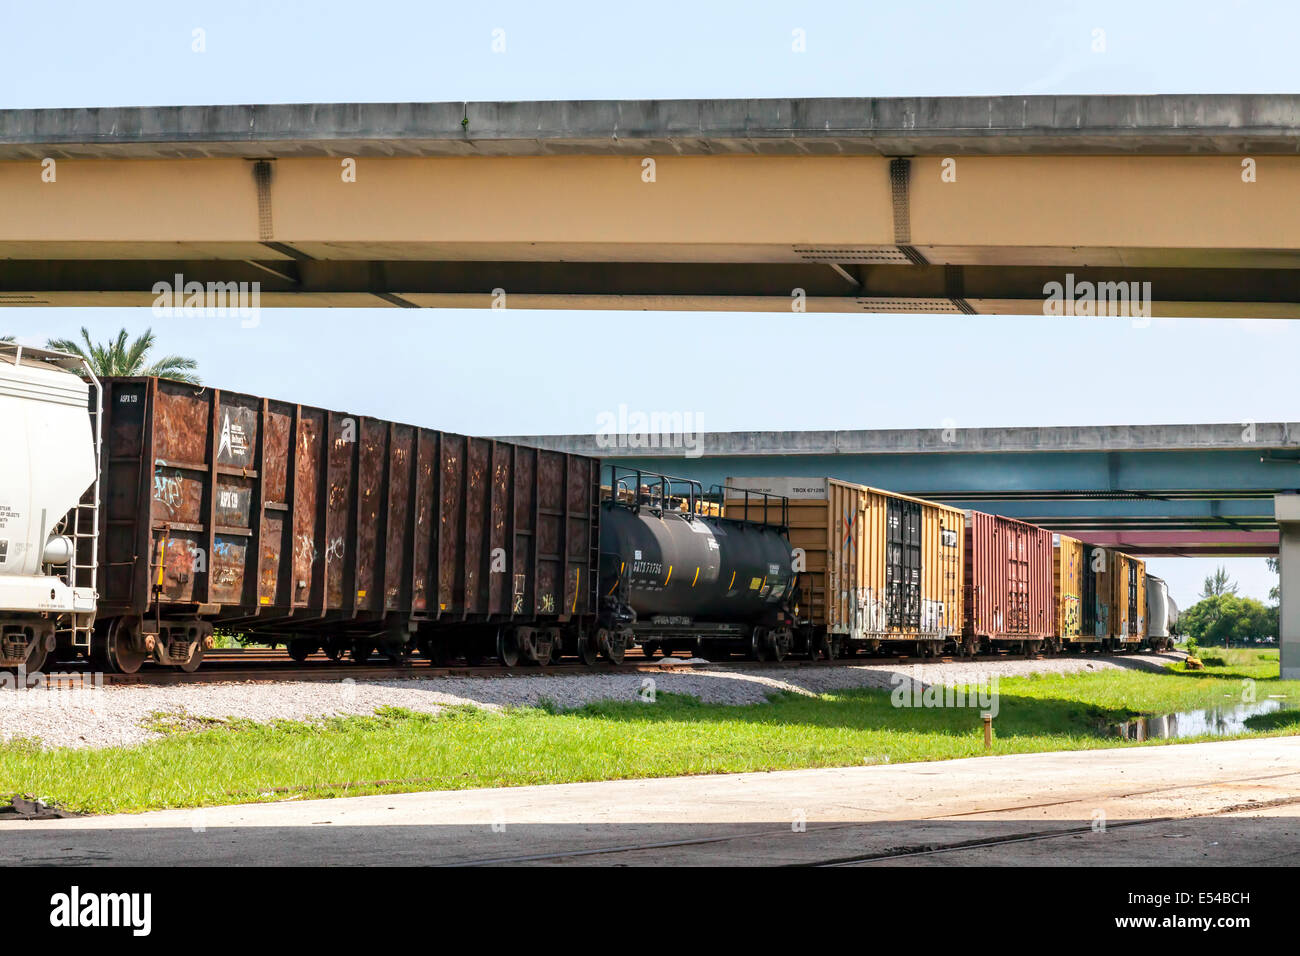 Rusting RR freight cars and tanker car sitting on a railroad siding under box beam highway overpasses. - Stock Image